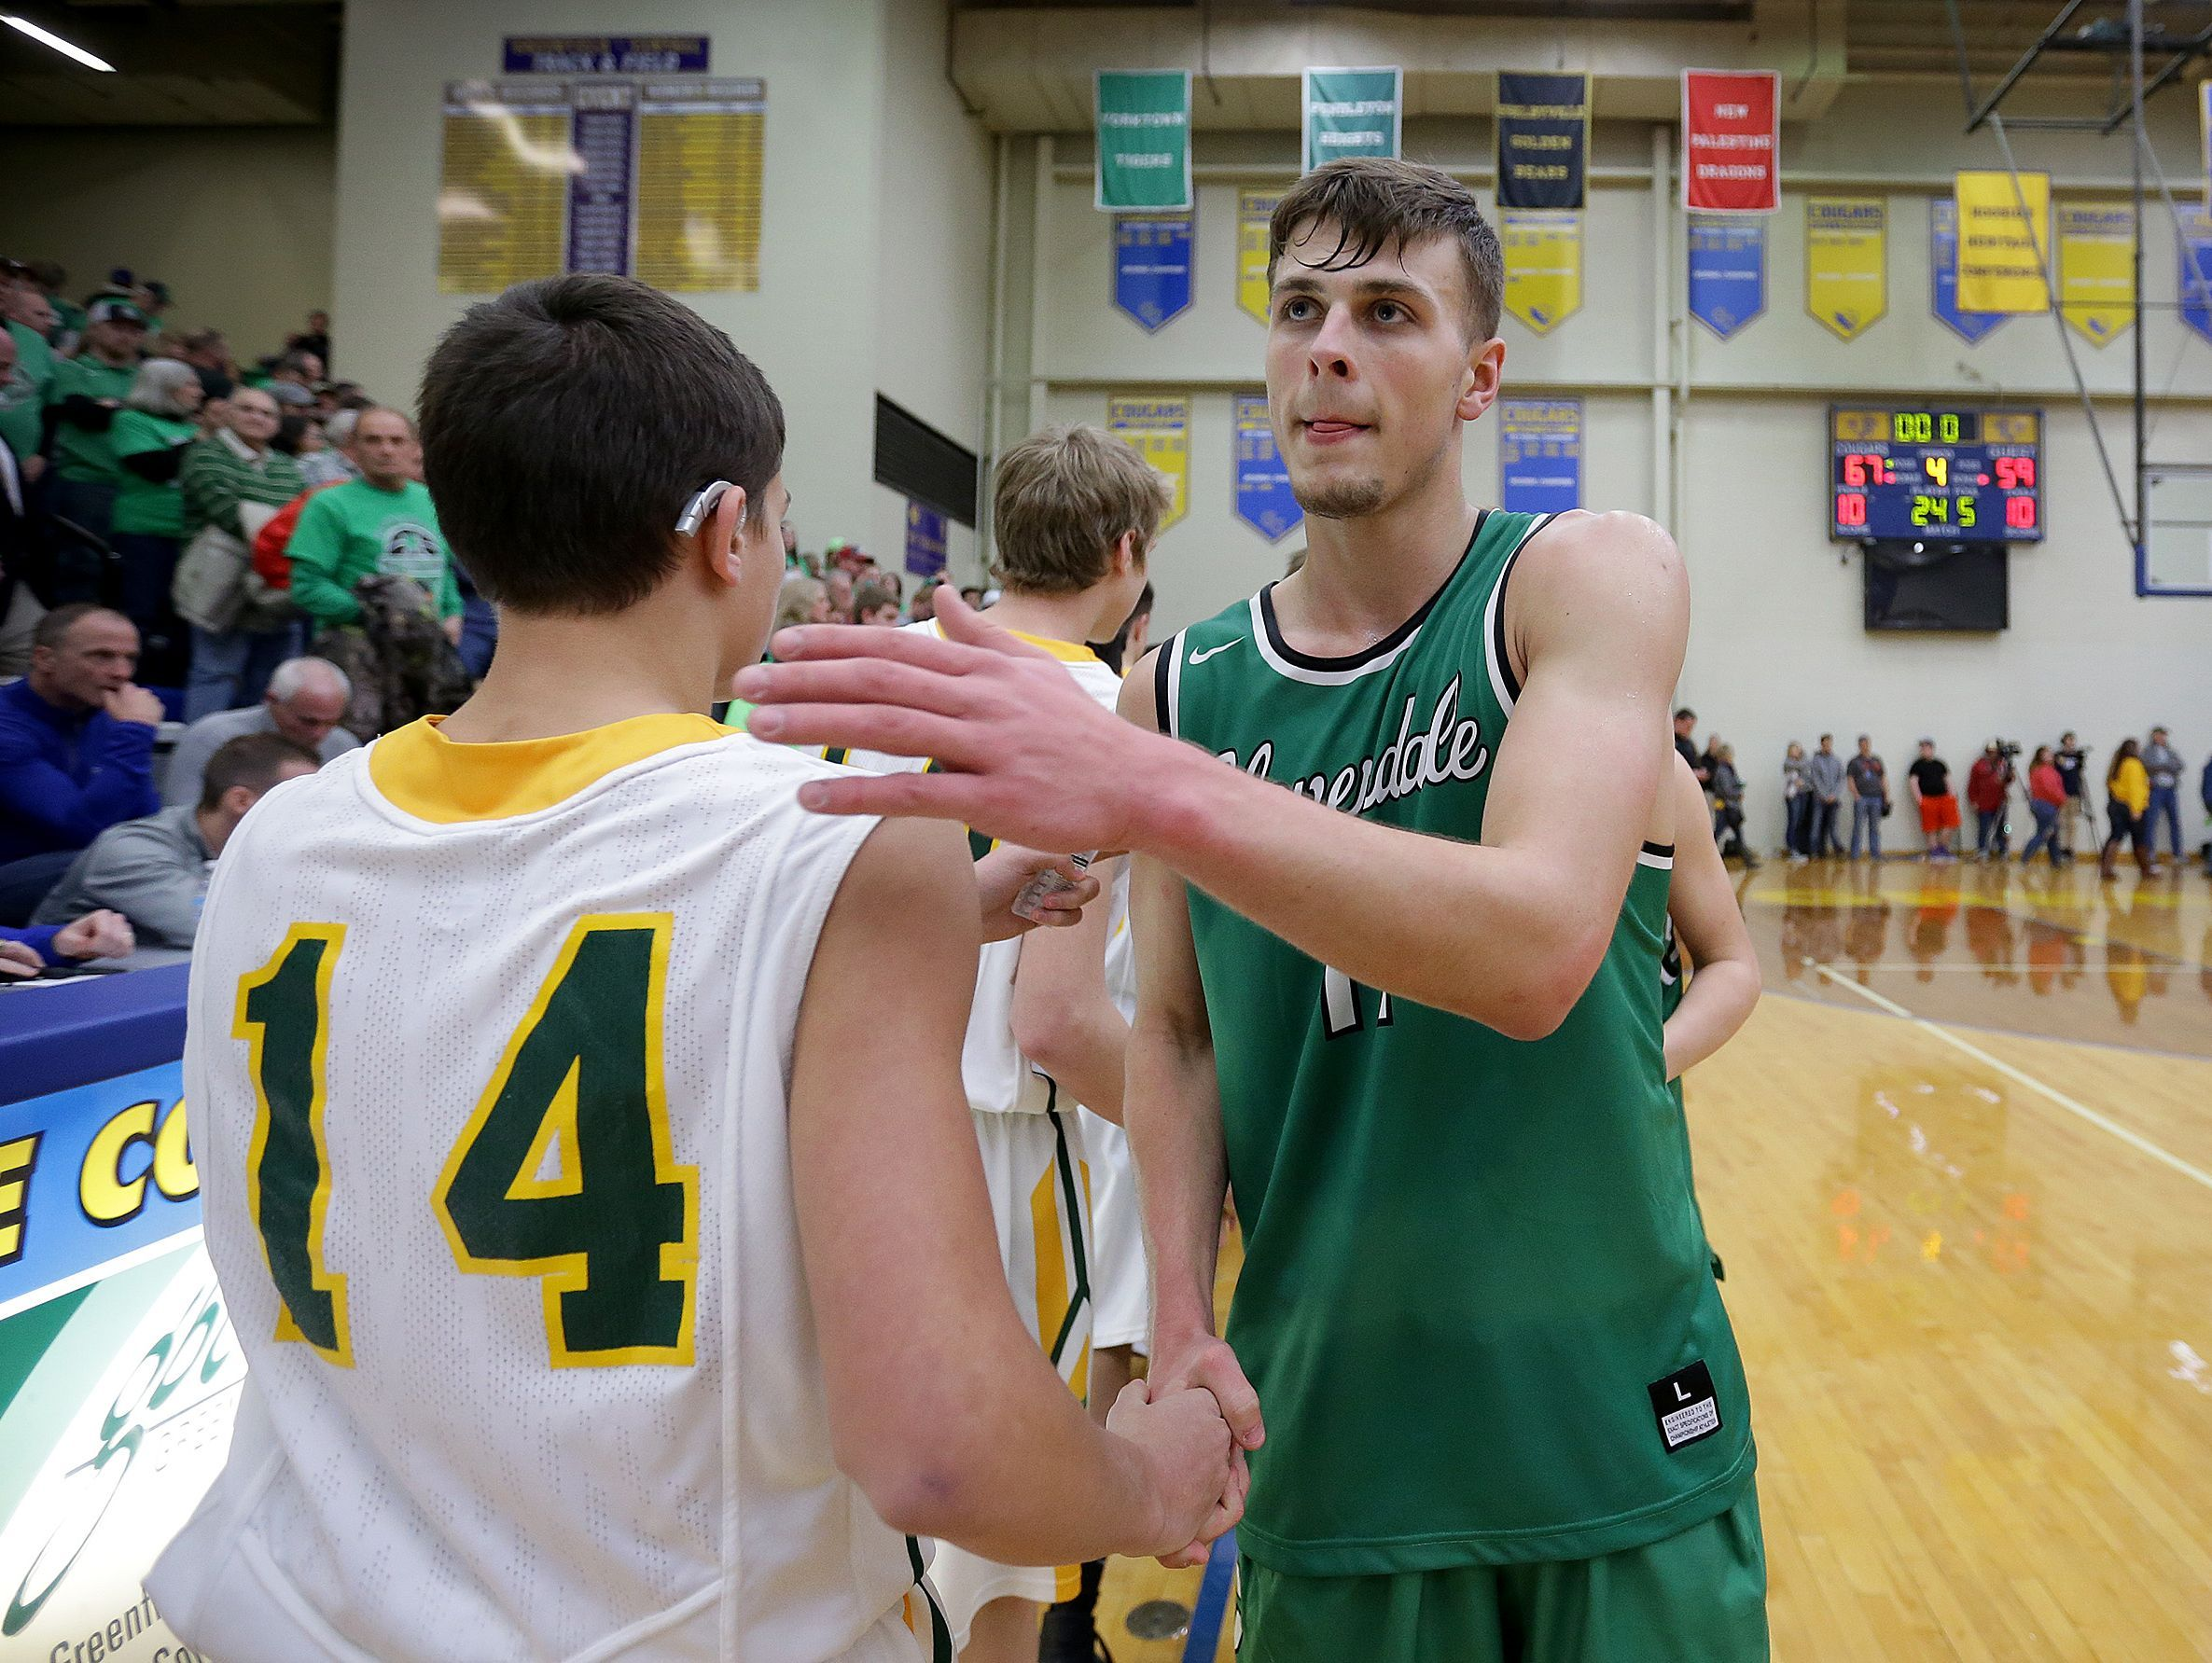 Cooper Neese (11) congratulates the Northeastern players at the end of their IHSAA Boys Regional basketball game, Saturday at Greenfield-Central High School. Cloverdale lost to Northeastern, 67-59.